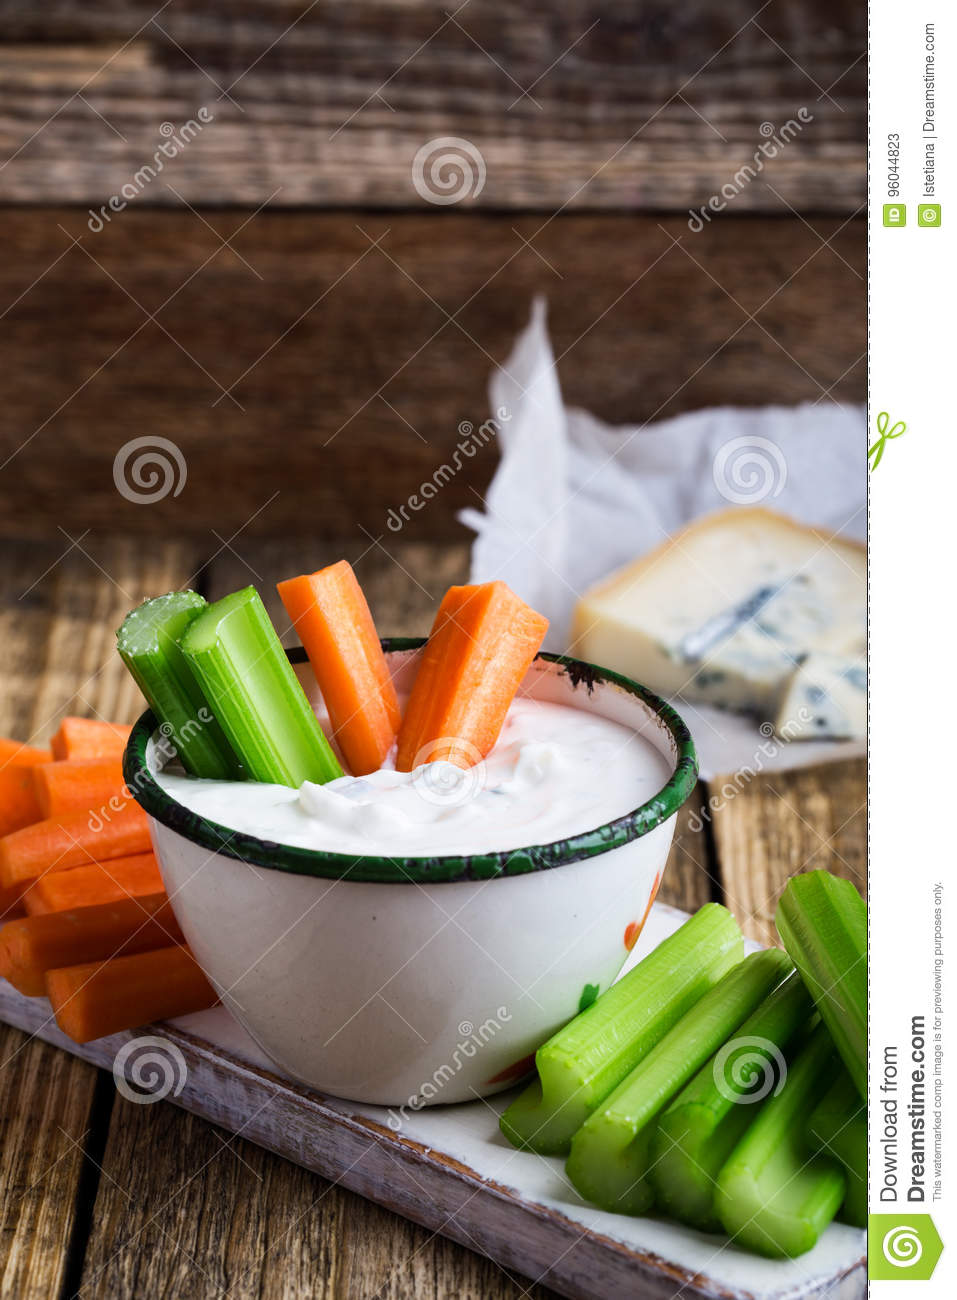 Mug Of Blue Cheese Garlic Dip Sauce With Celery And Carrot Stick Stock Image Image Of Dairy Dressing 96044823